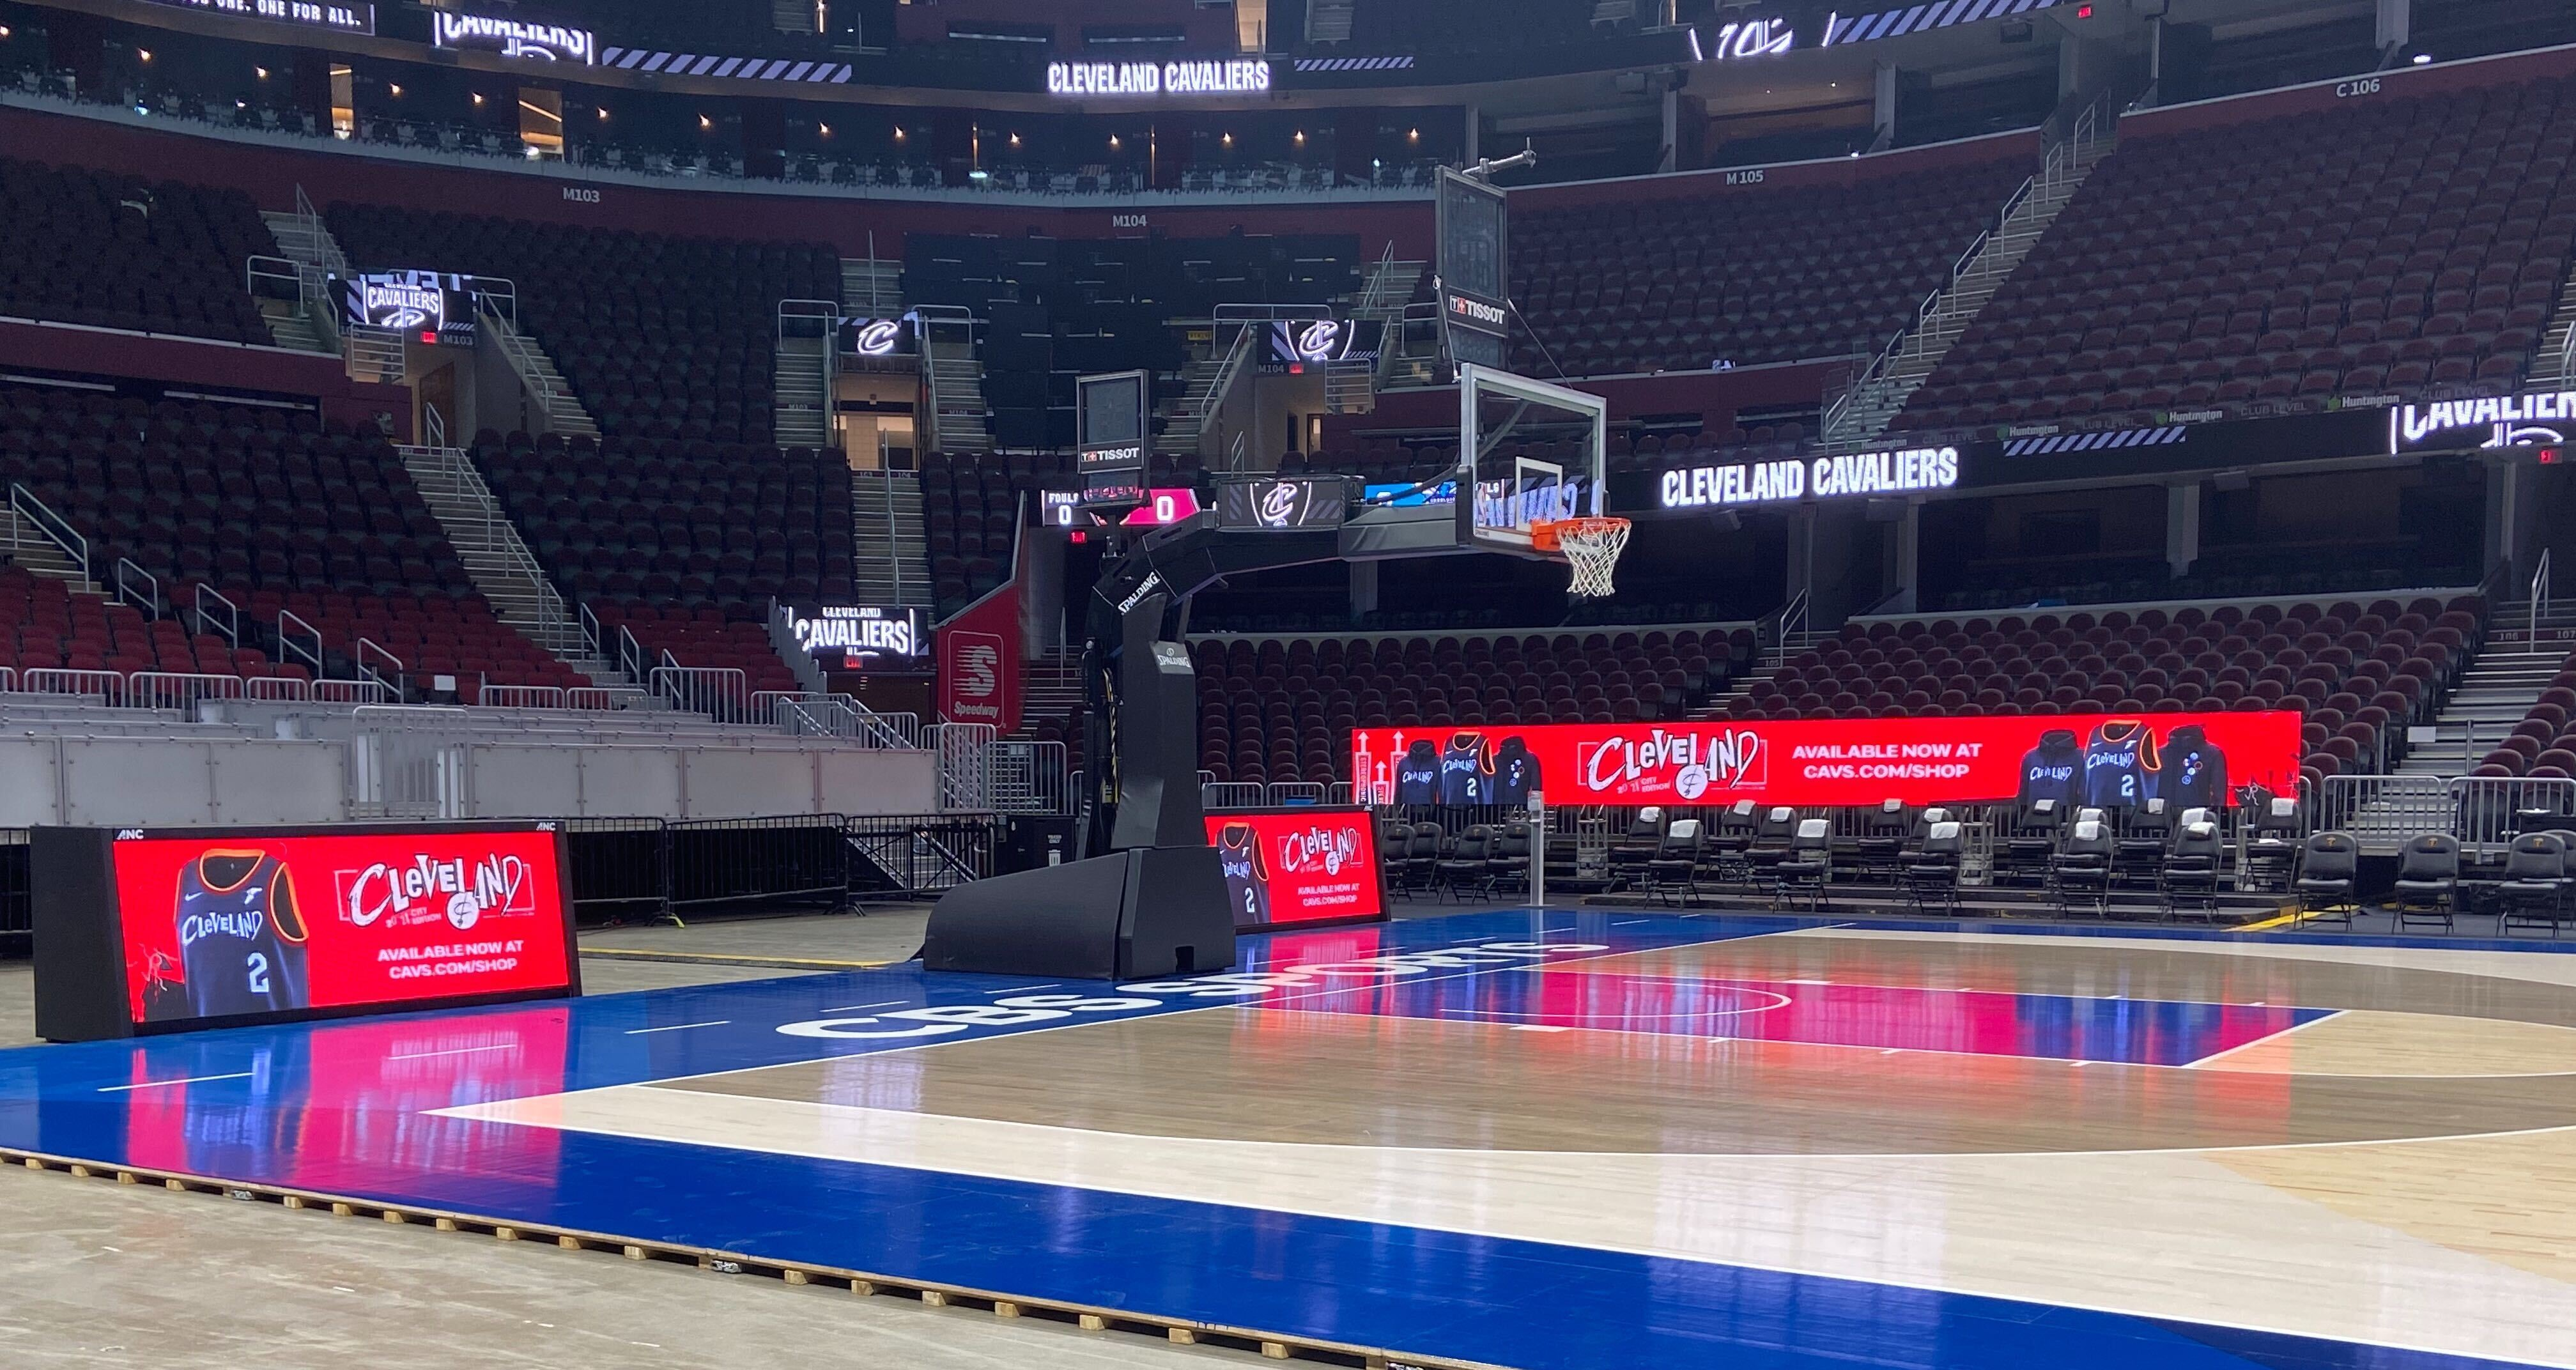 Cleveland Cavalier Courtside System